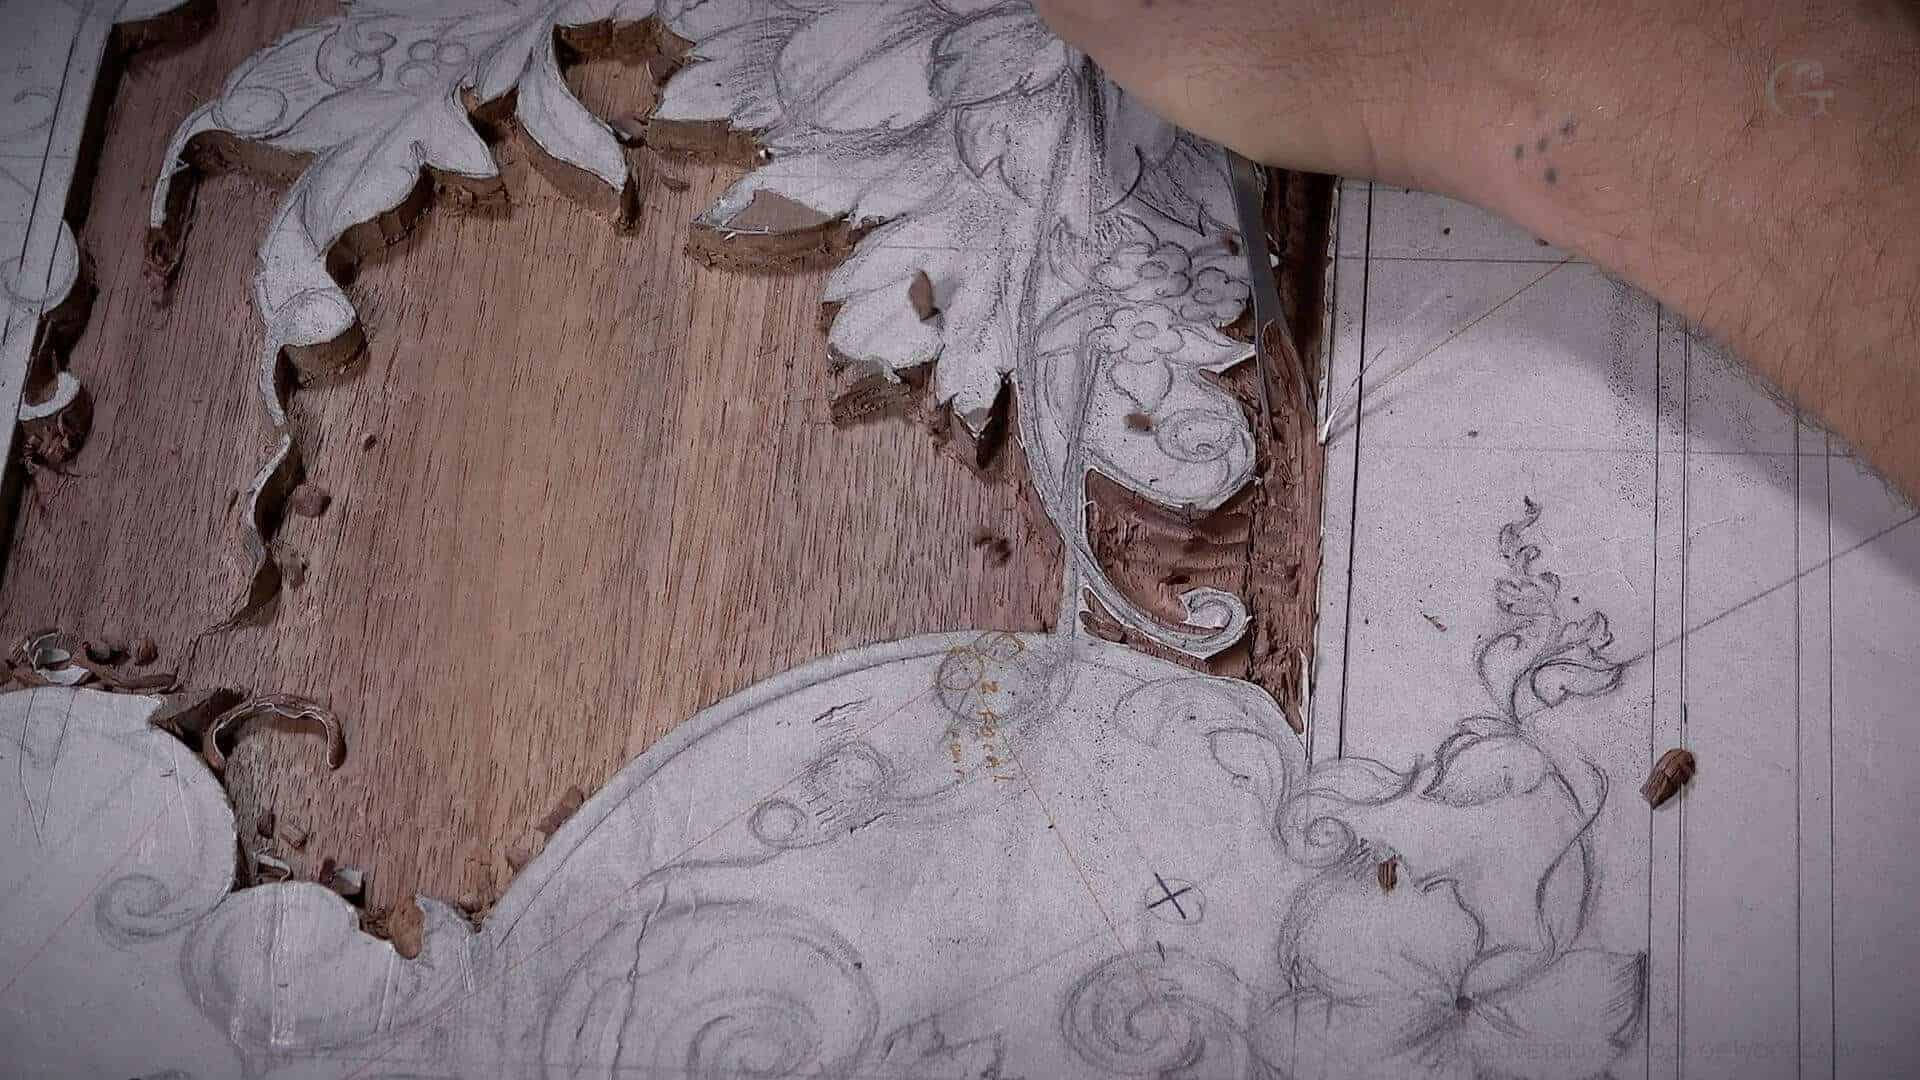 Woodcarving, From Designing to Carving - Learn To Carve Late 18th Century Style Furniture Panel - Woodcarving School Online with Alexander Grabovetskiy. @grabovetkiy #woodcarving #woodworking Woodcarving Video Workshops. Woodcarving Lessons. Wood Carving Virtual Apprenticeship. Classical Woodcarving Courses online.